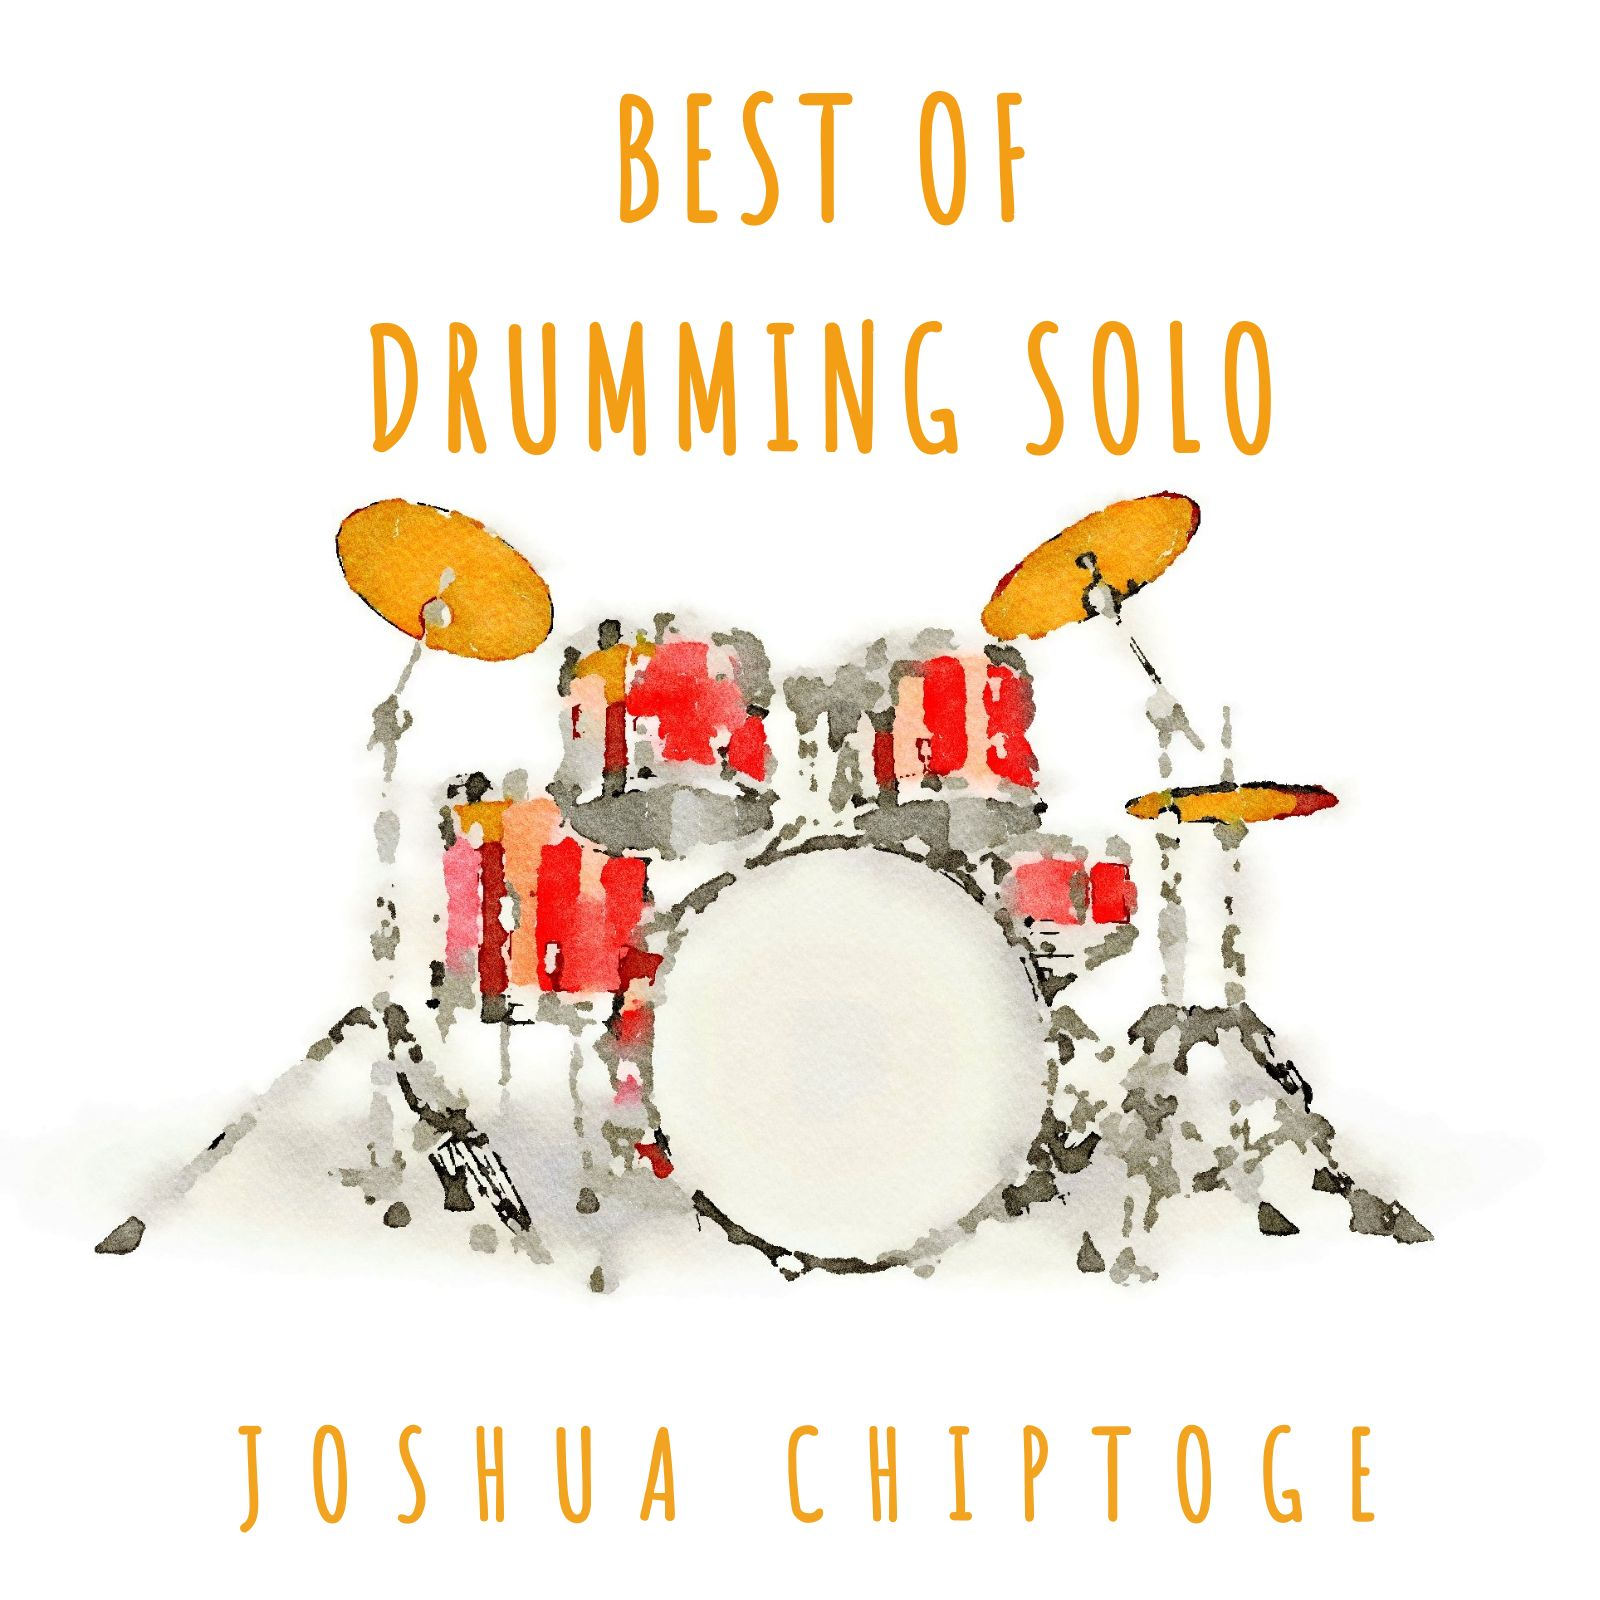 Drumming Themed CD Cover Template